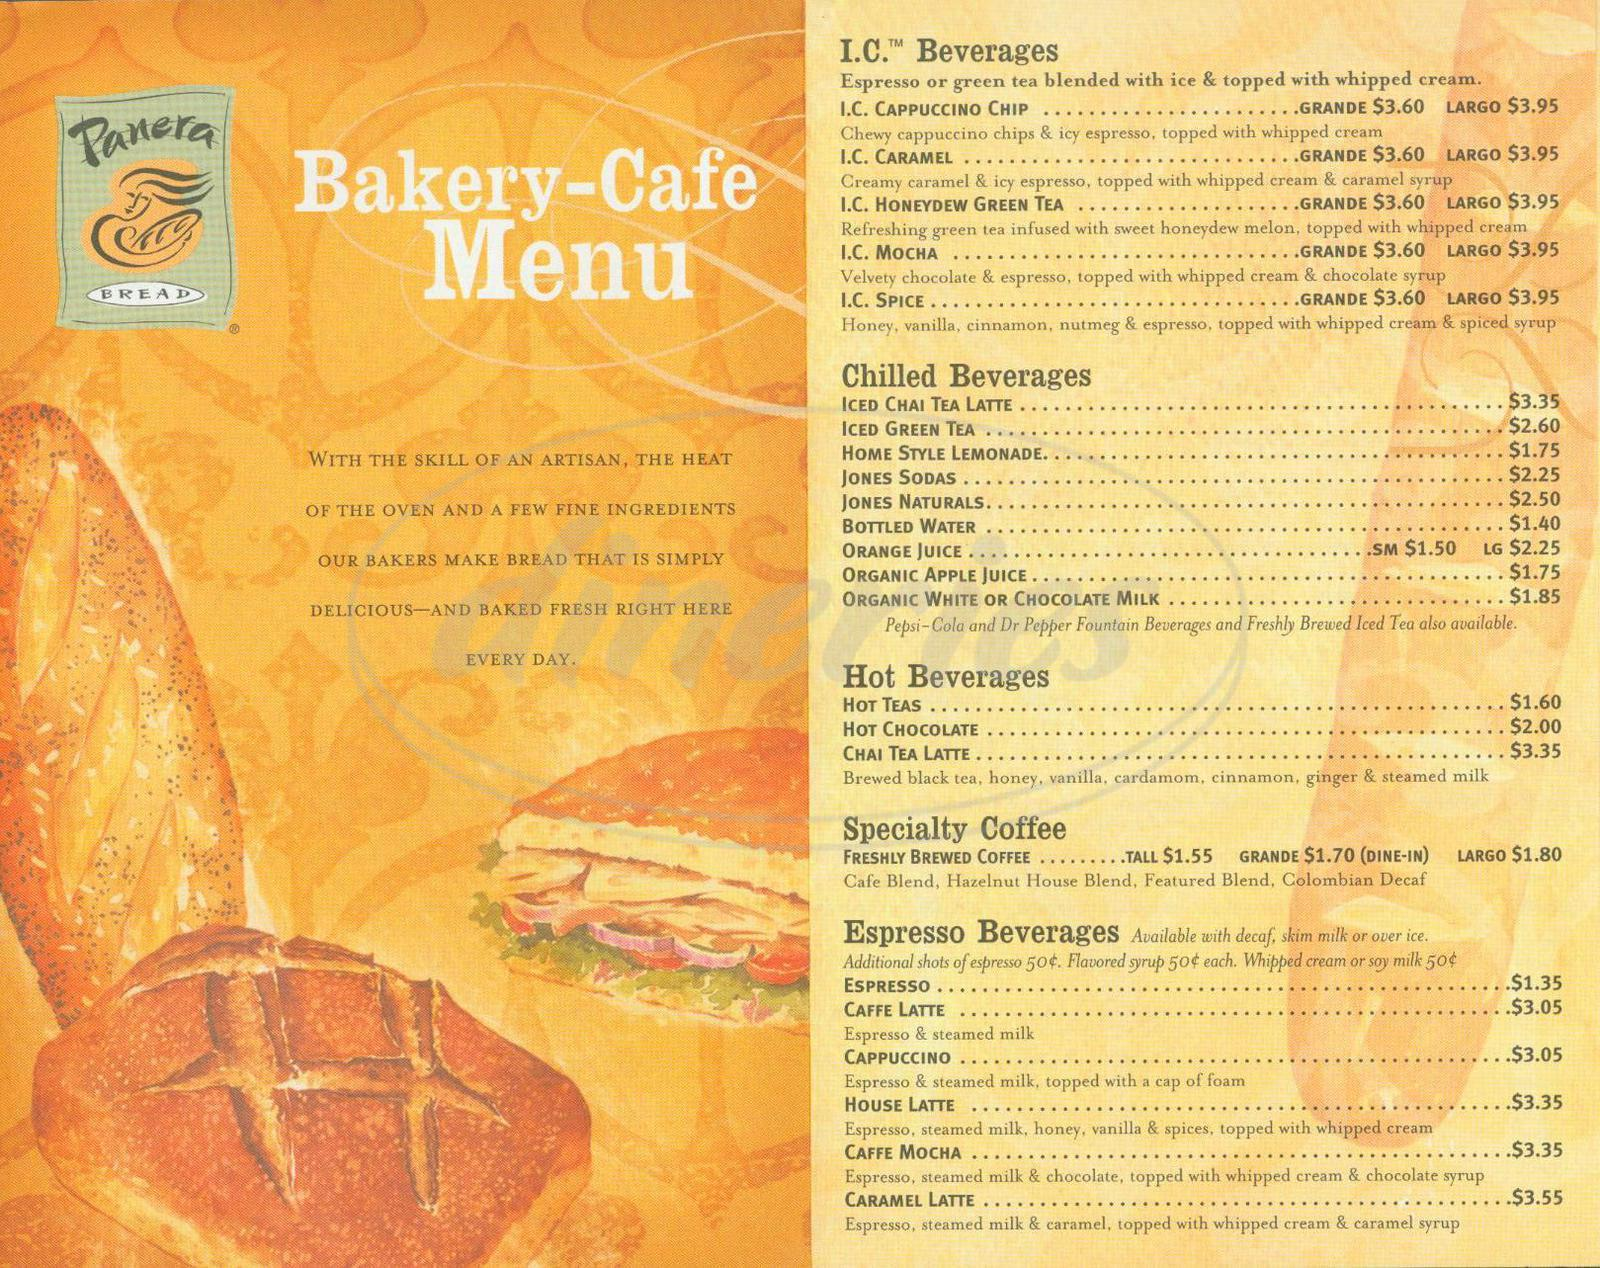 photo about Panera Printable Menu named Panera Bread Menu - Irvine - Dineries